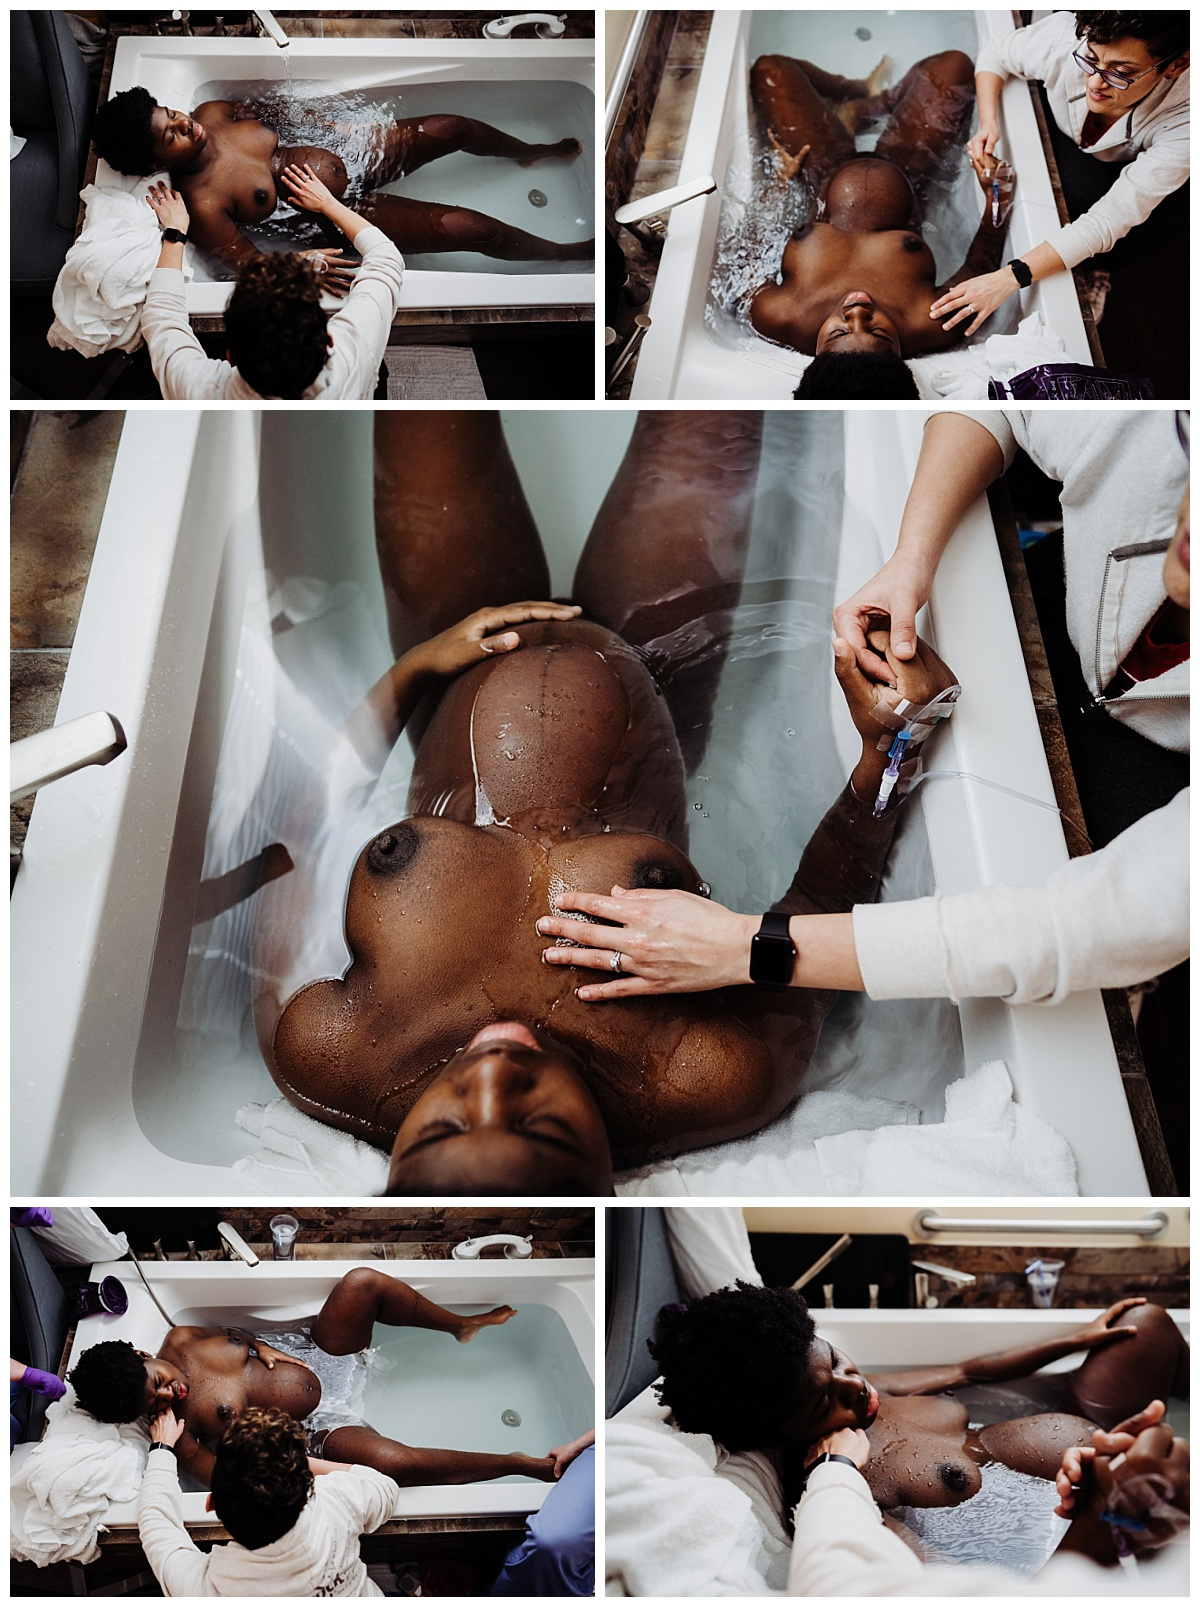 a series of images showing the birthing person stretched out in the tub at the birth center with her partner pouring water over her chest, holding her hand and her shoulder